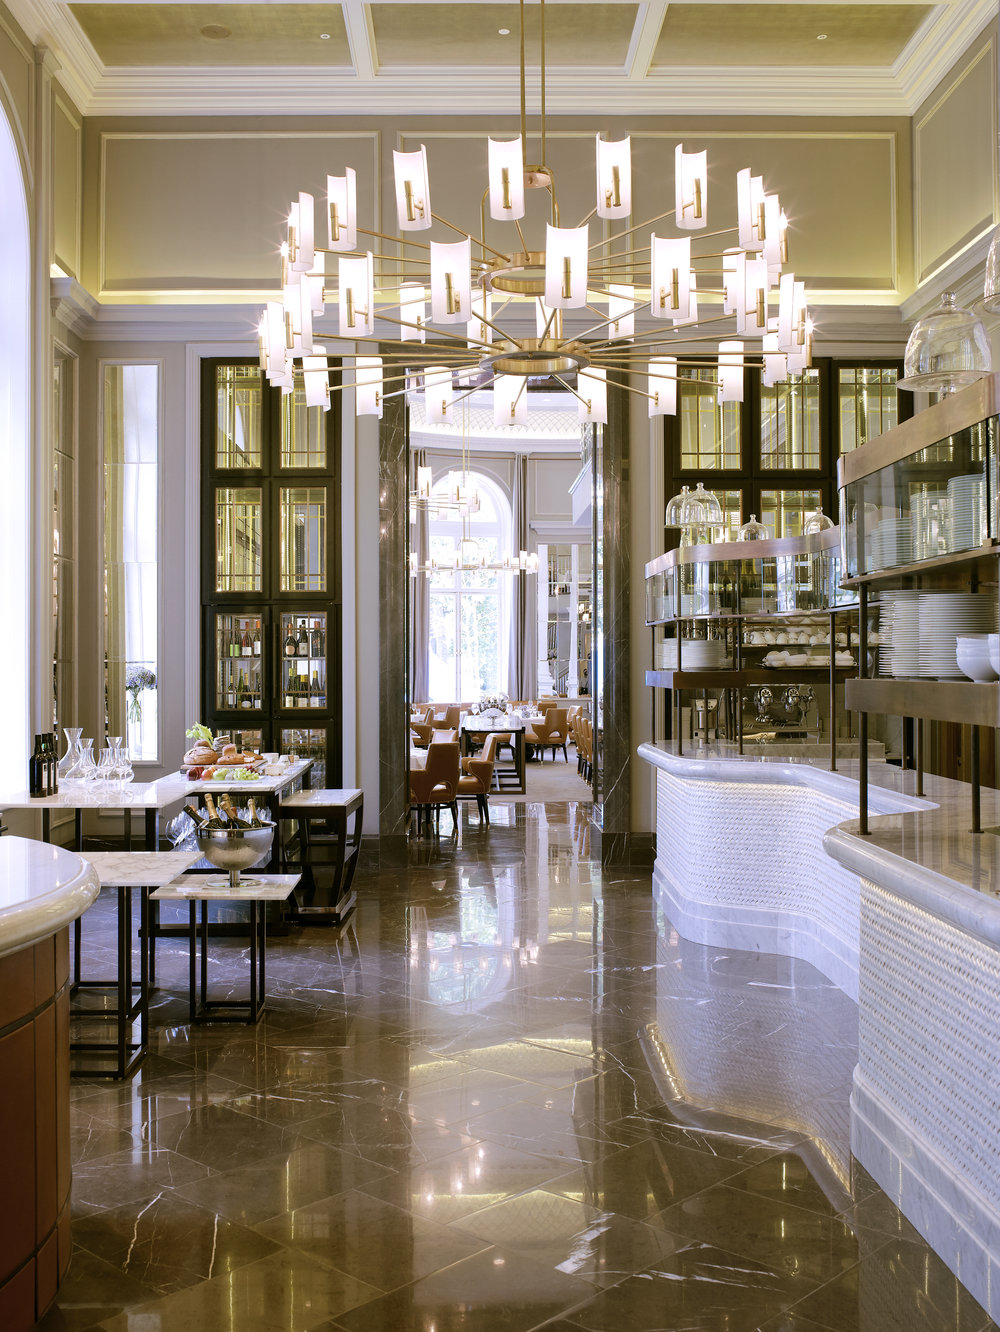 The Northall Food Theatre to Dining Room Corinthia Hotel London.jpg